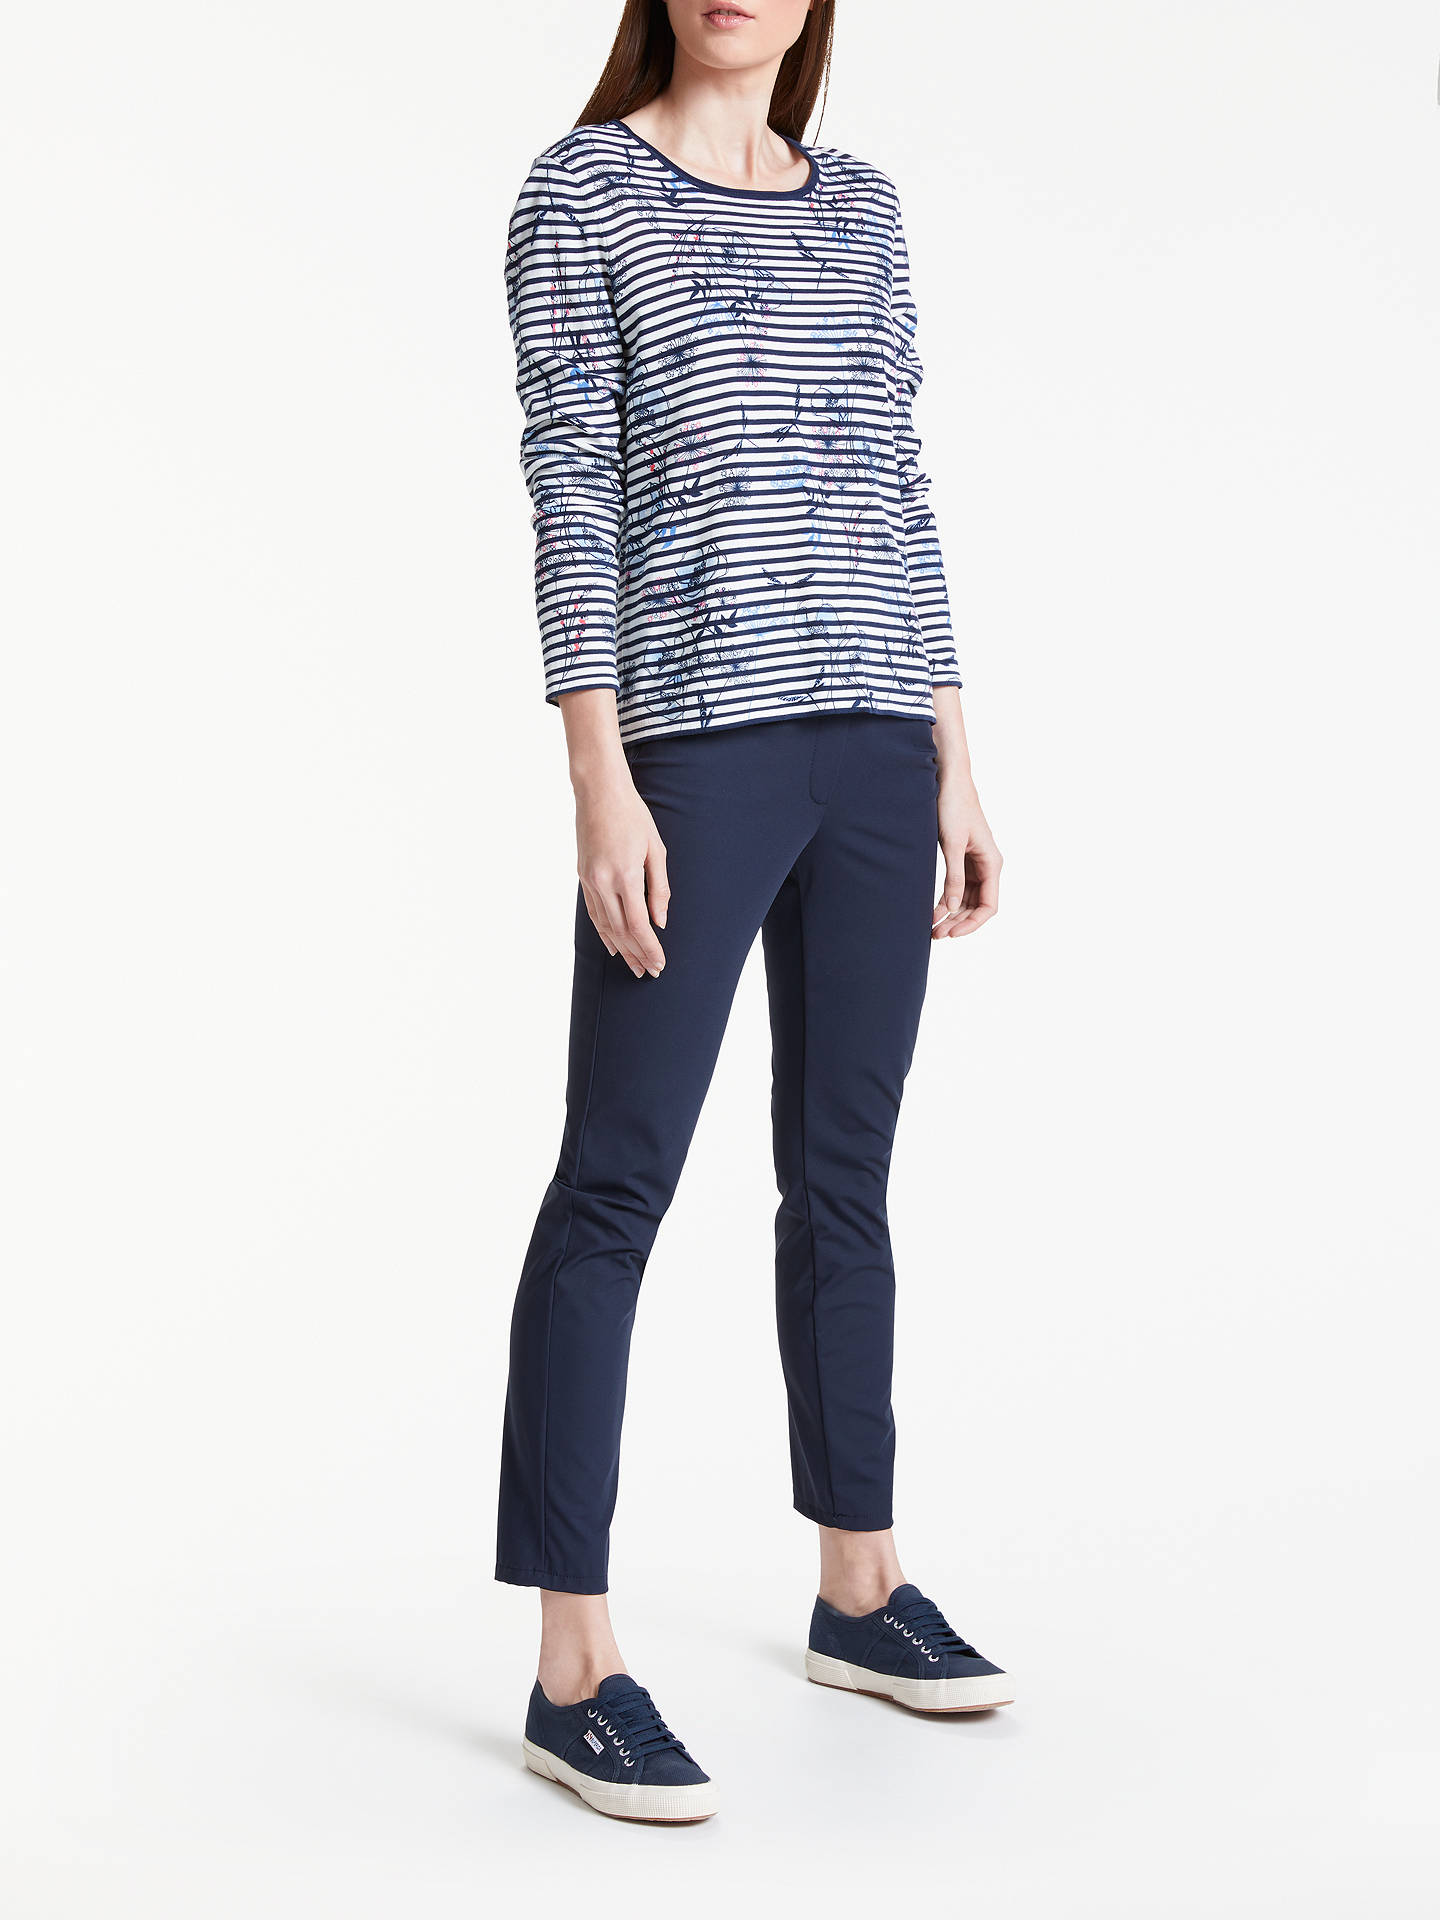 BuyGerry Weber Print Stripe Jumper, Blue/Ecru, 12 Online at johnlewis.com